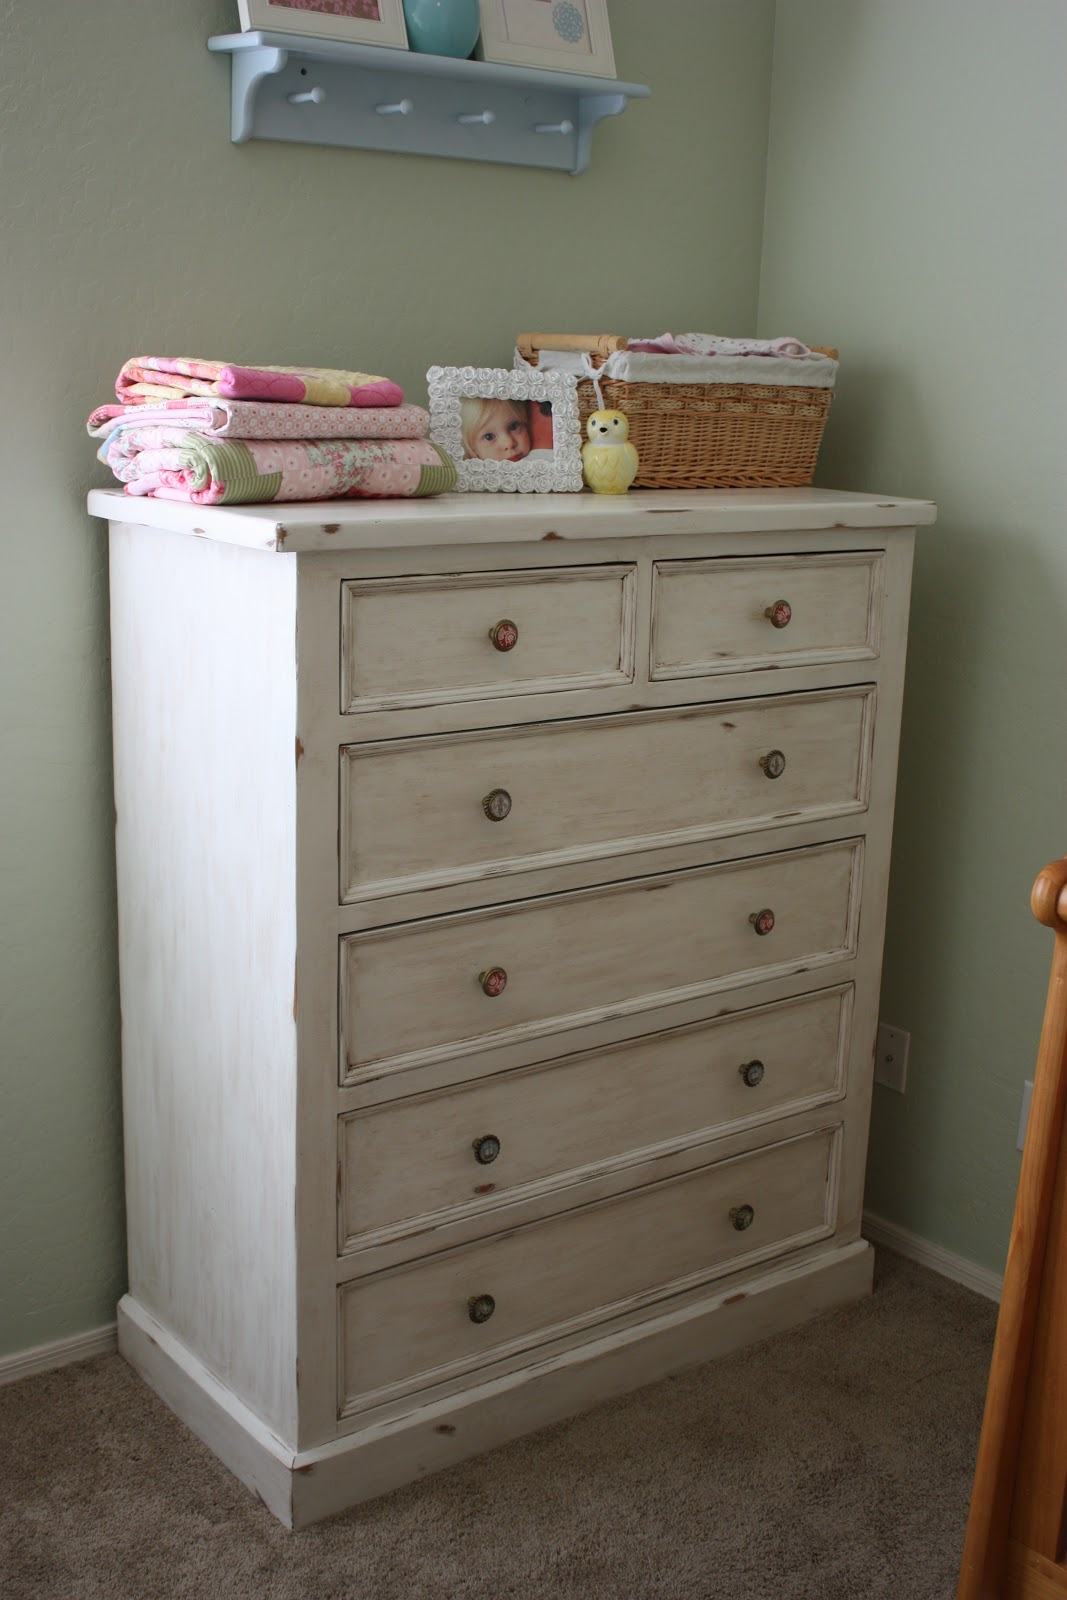 The pretty poppy how to refinish furniture in a vintage style for Old furniture